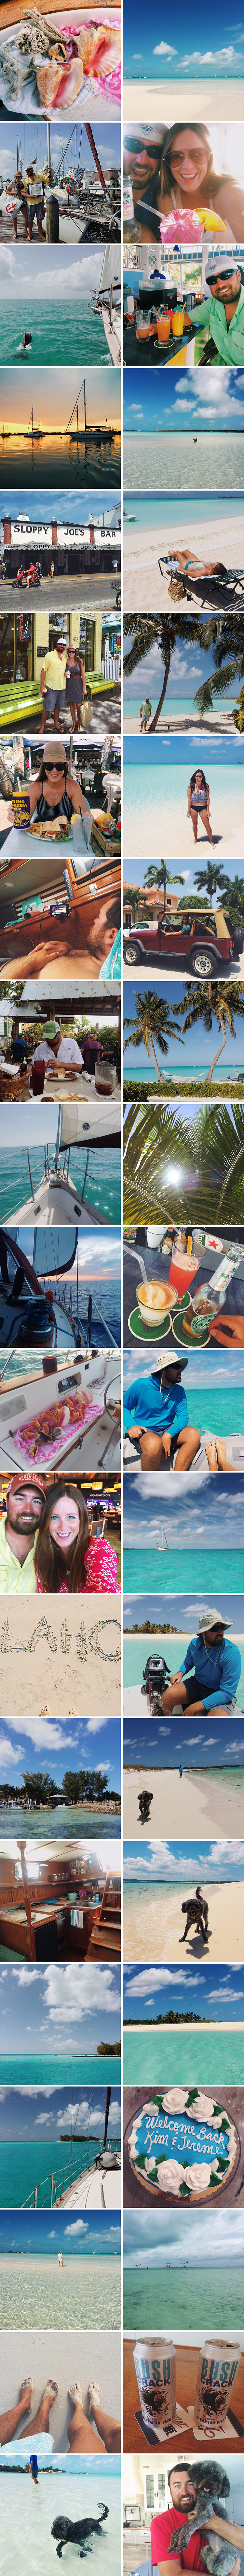 Sailing-Blog-Cruising-Caribbean-Bahamas-LAHOWIND-Boat Life Lately May 2015